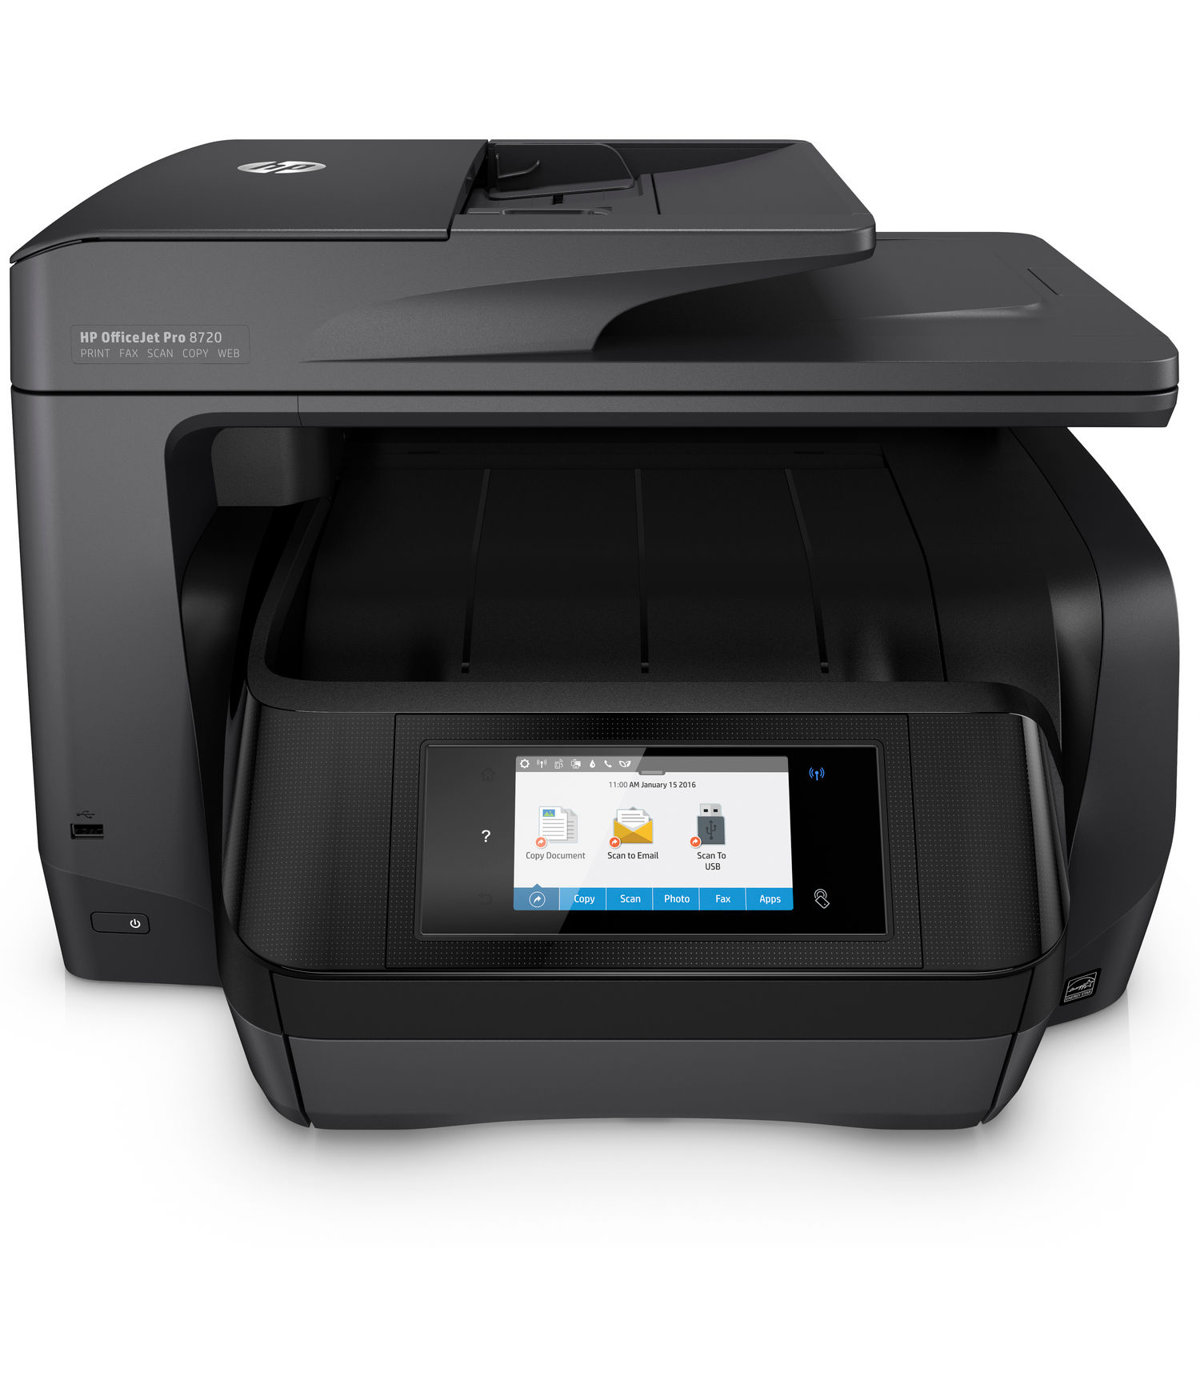 Office depot color printing costs - Hp Officejet Pro 8720 Wireless All In One Printer With Mobile Printing Black M9l74a By Office Depot Officemax